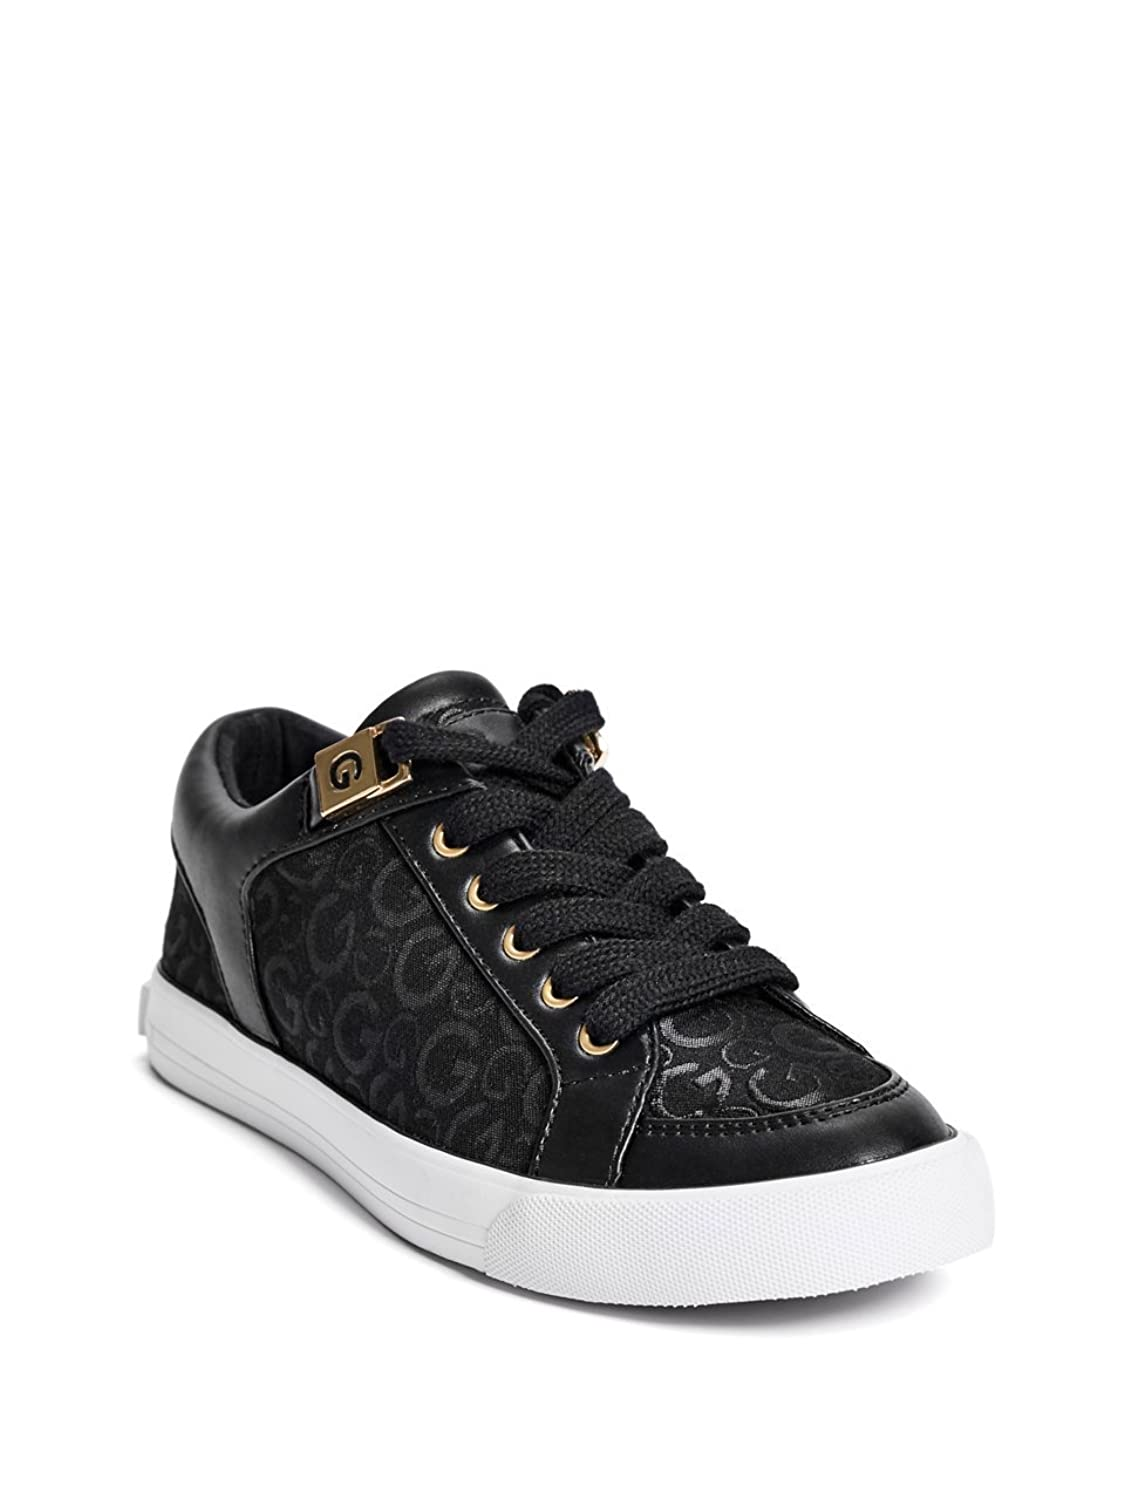 G By Guess Women's Oryder Logo Embossed Sneakers by G+By+Guess